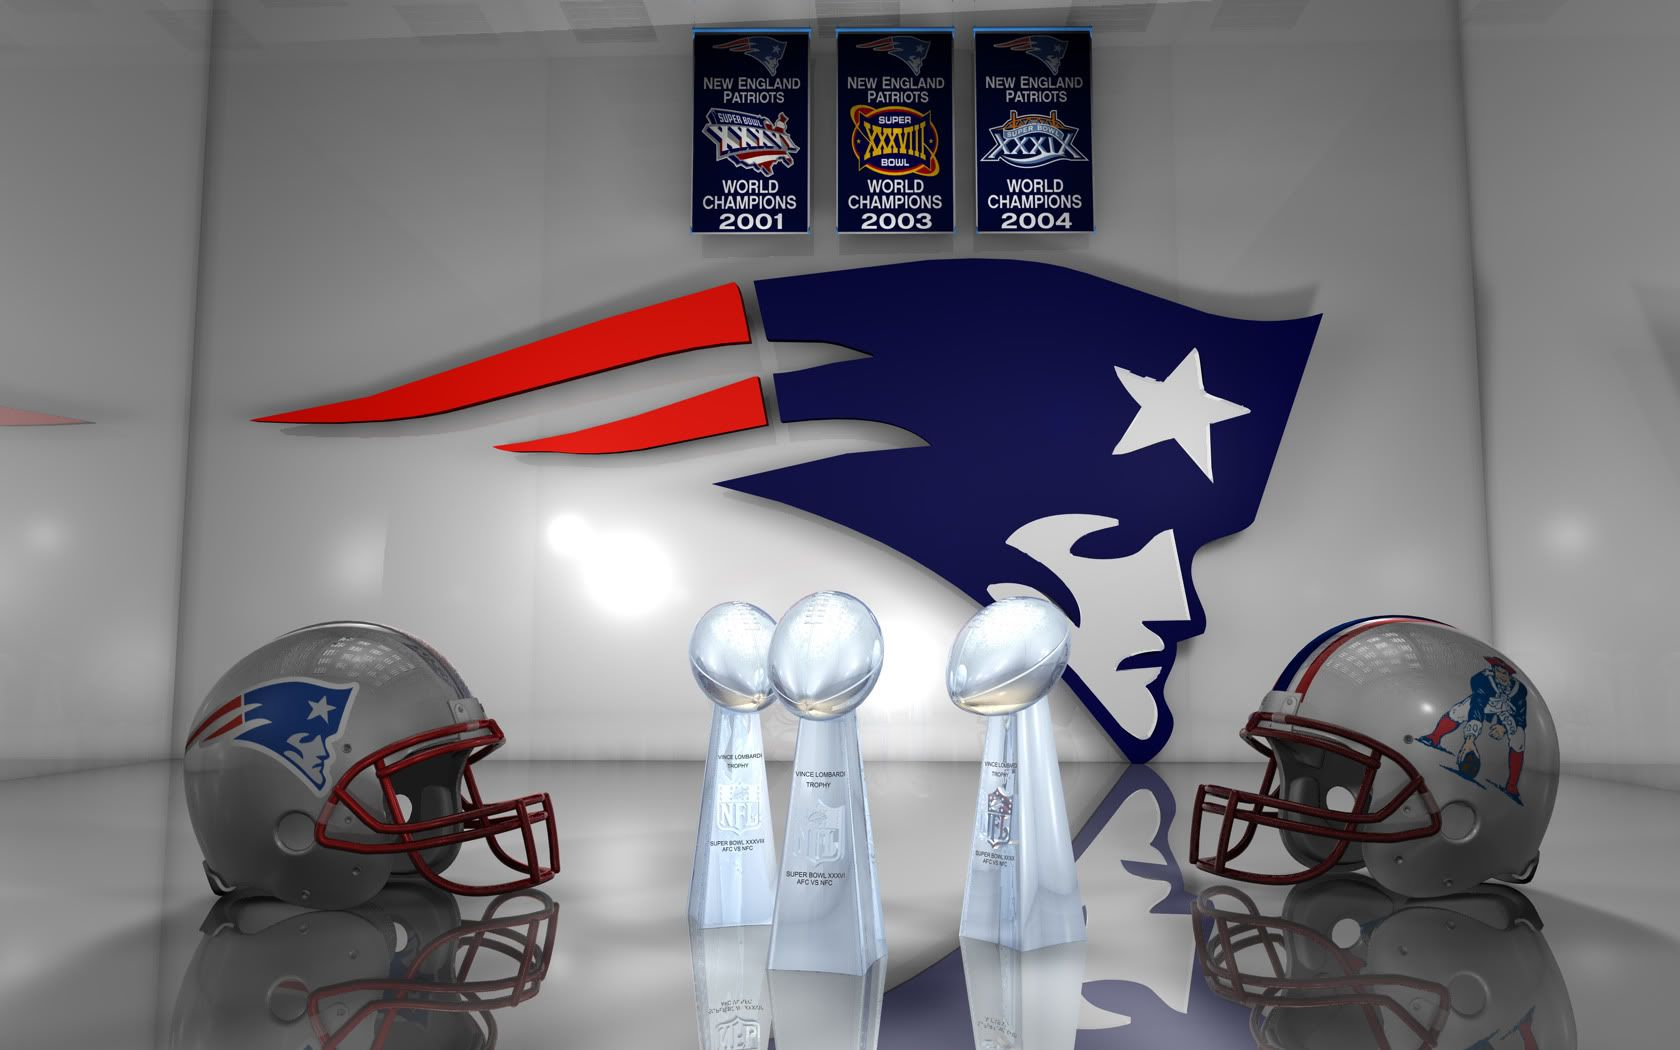 new england patriots championships hd wallpapers The